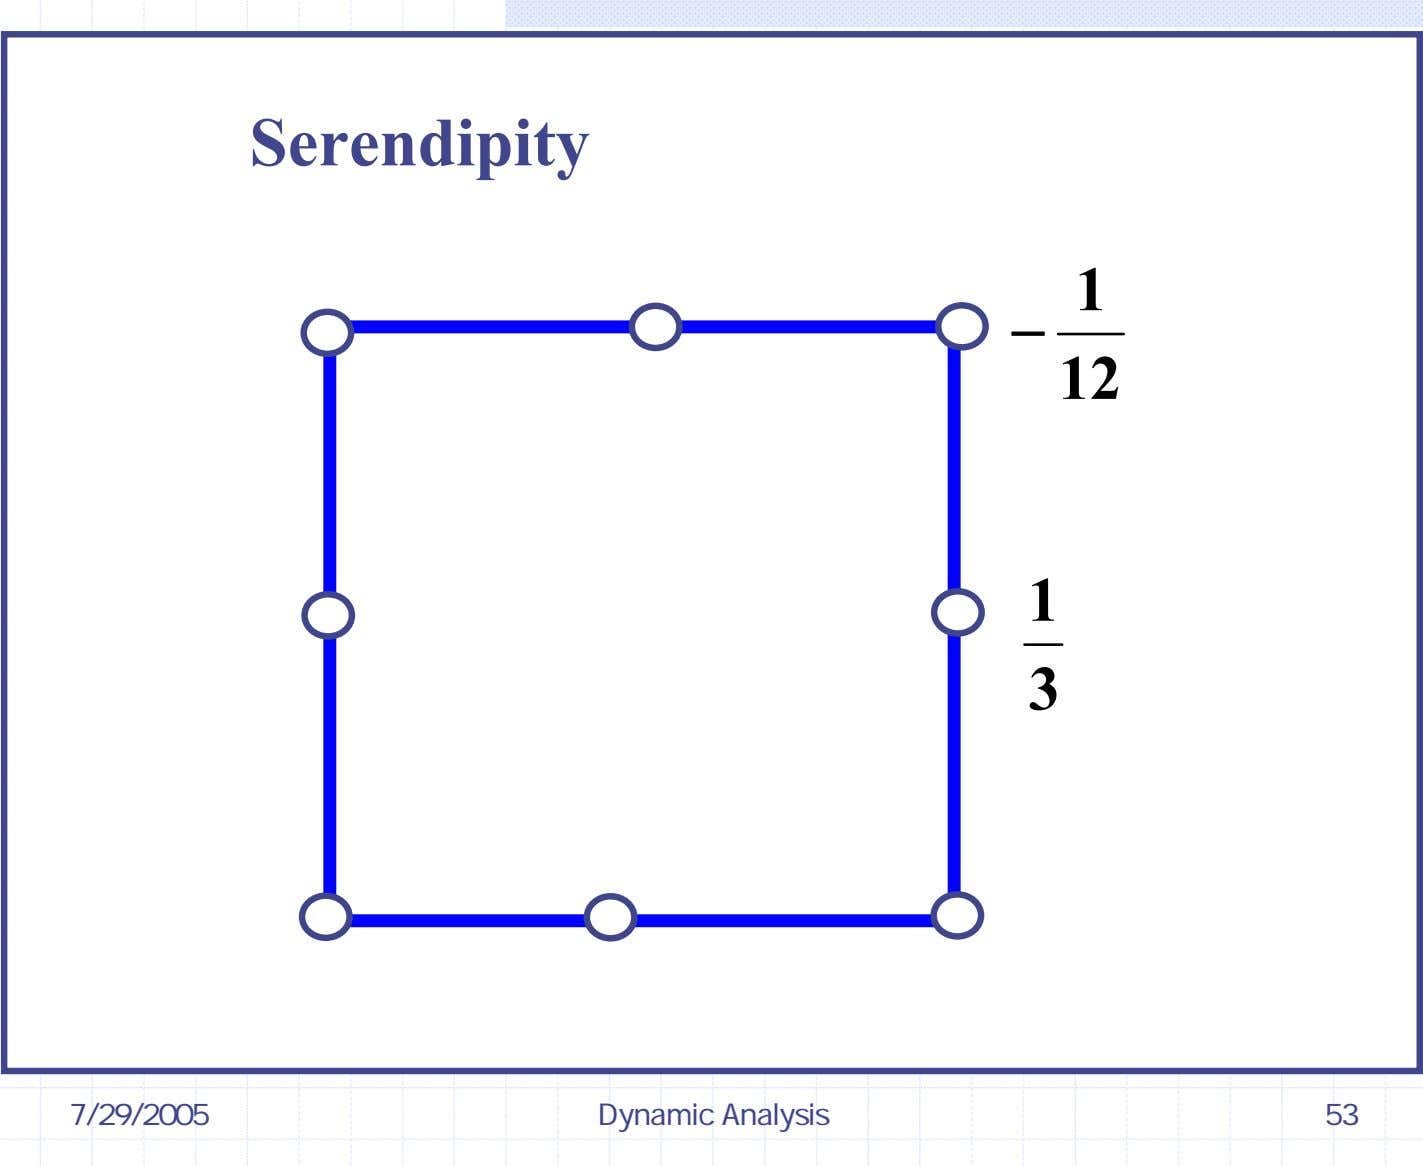 Serendipity 1 − 12 1 3 7/29/2005 Dynamic Analysis 53